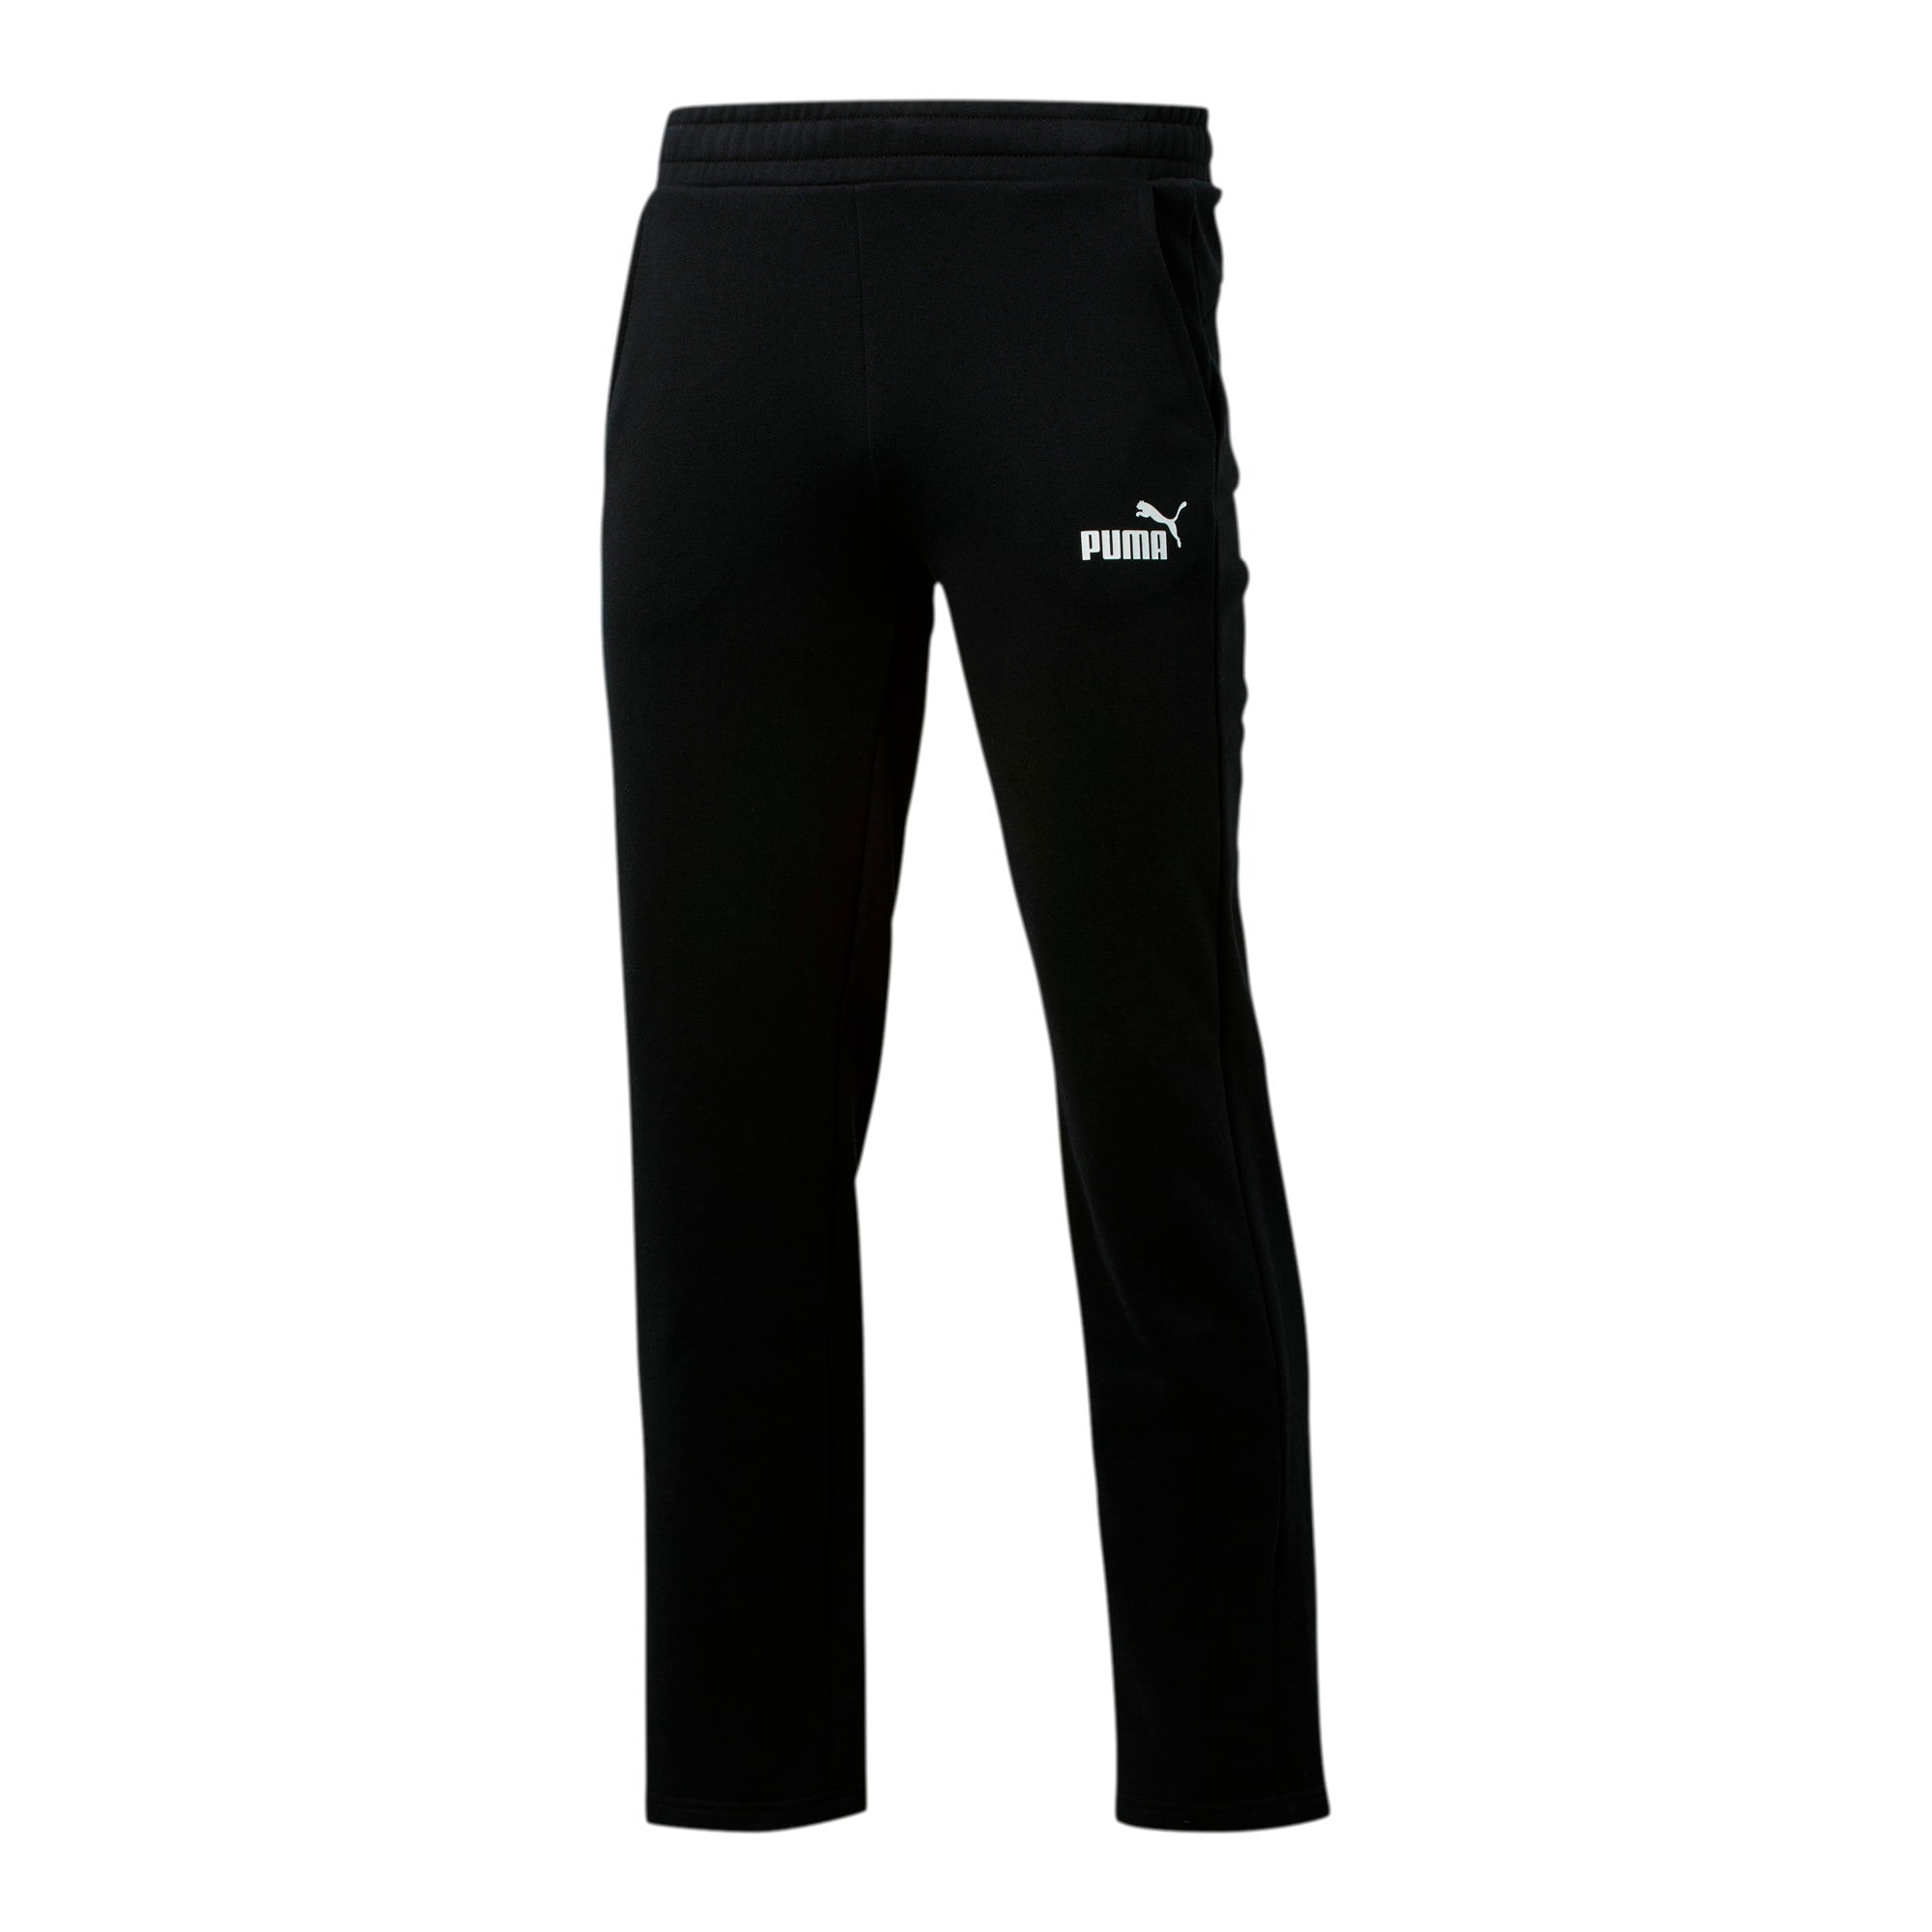 Thumbnail 1 of Essentials Men's Fleece Pants, Puma Black, medium